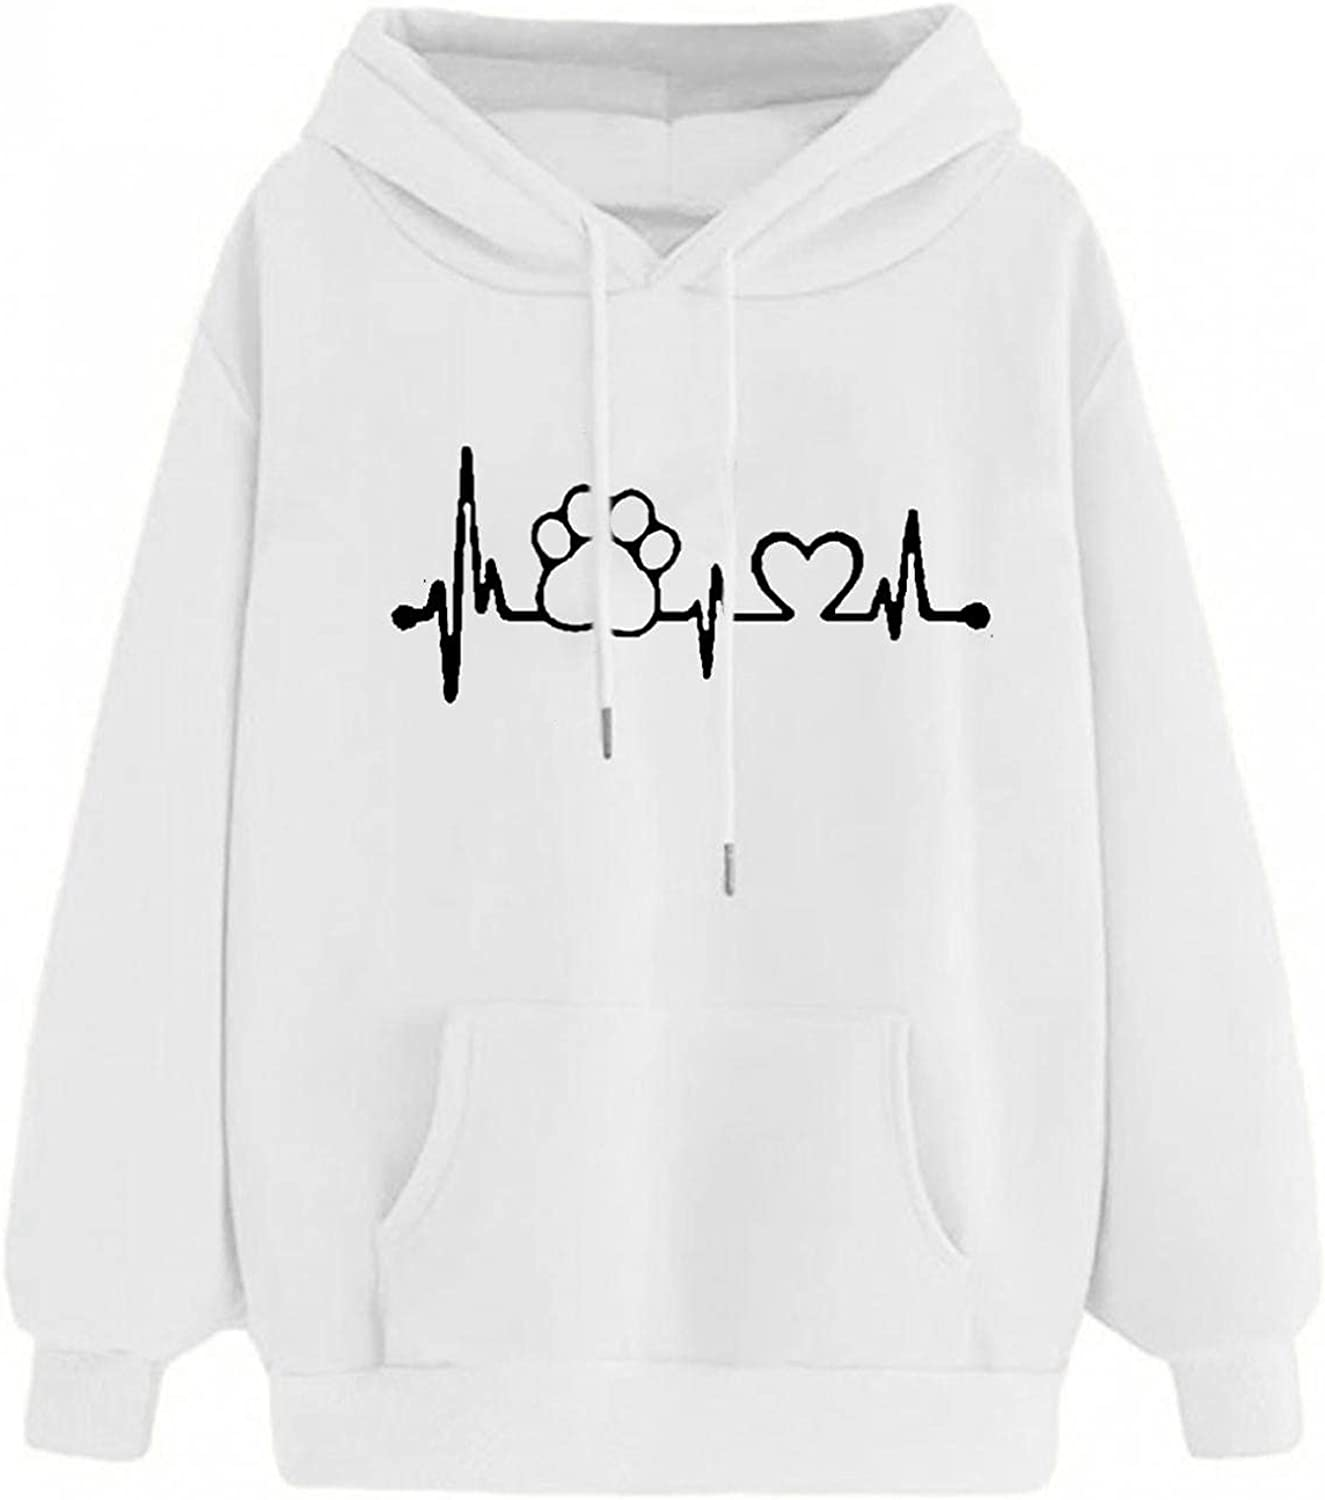 Hotkey Hoodies for Women, Women's Fashion Long Sleeve Tops Heart Cute Paw Graphic Pullover Sweatshirt for Women with Pocket